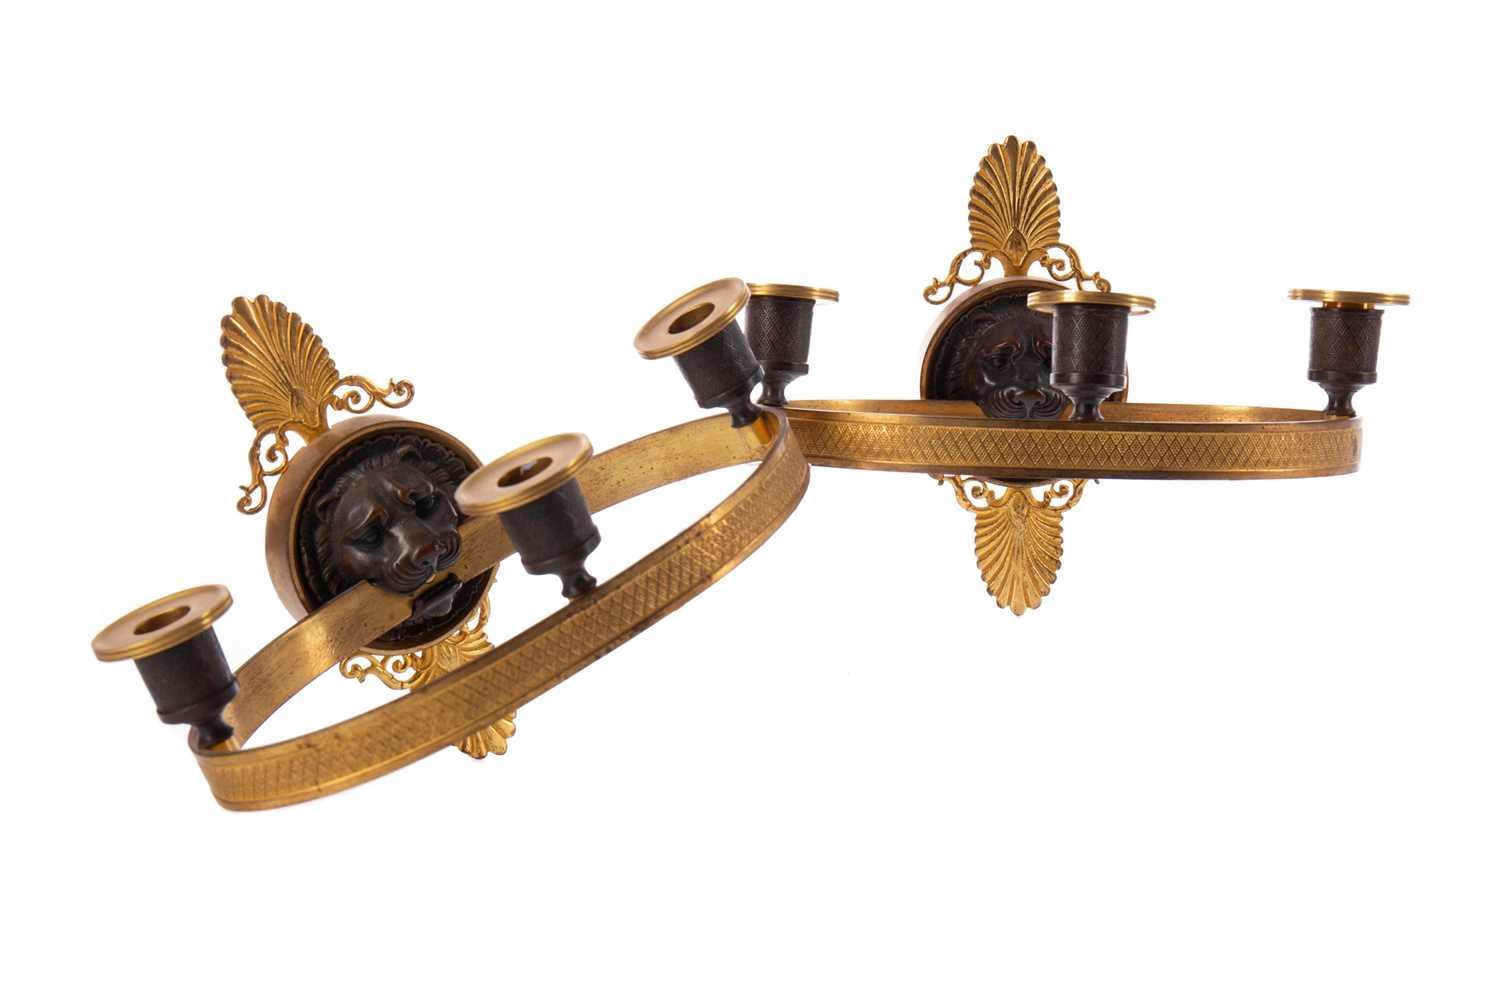 Lot 1311 - A PAIR OF 19TH CENTURY FRENCH EMPIRE BRONZE AND ORMOLU WALL SCONCES